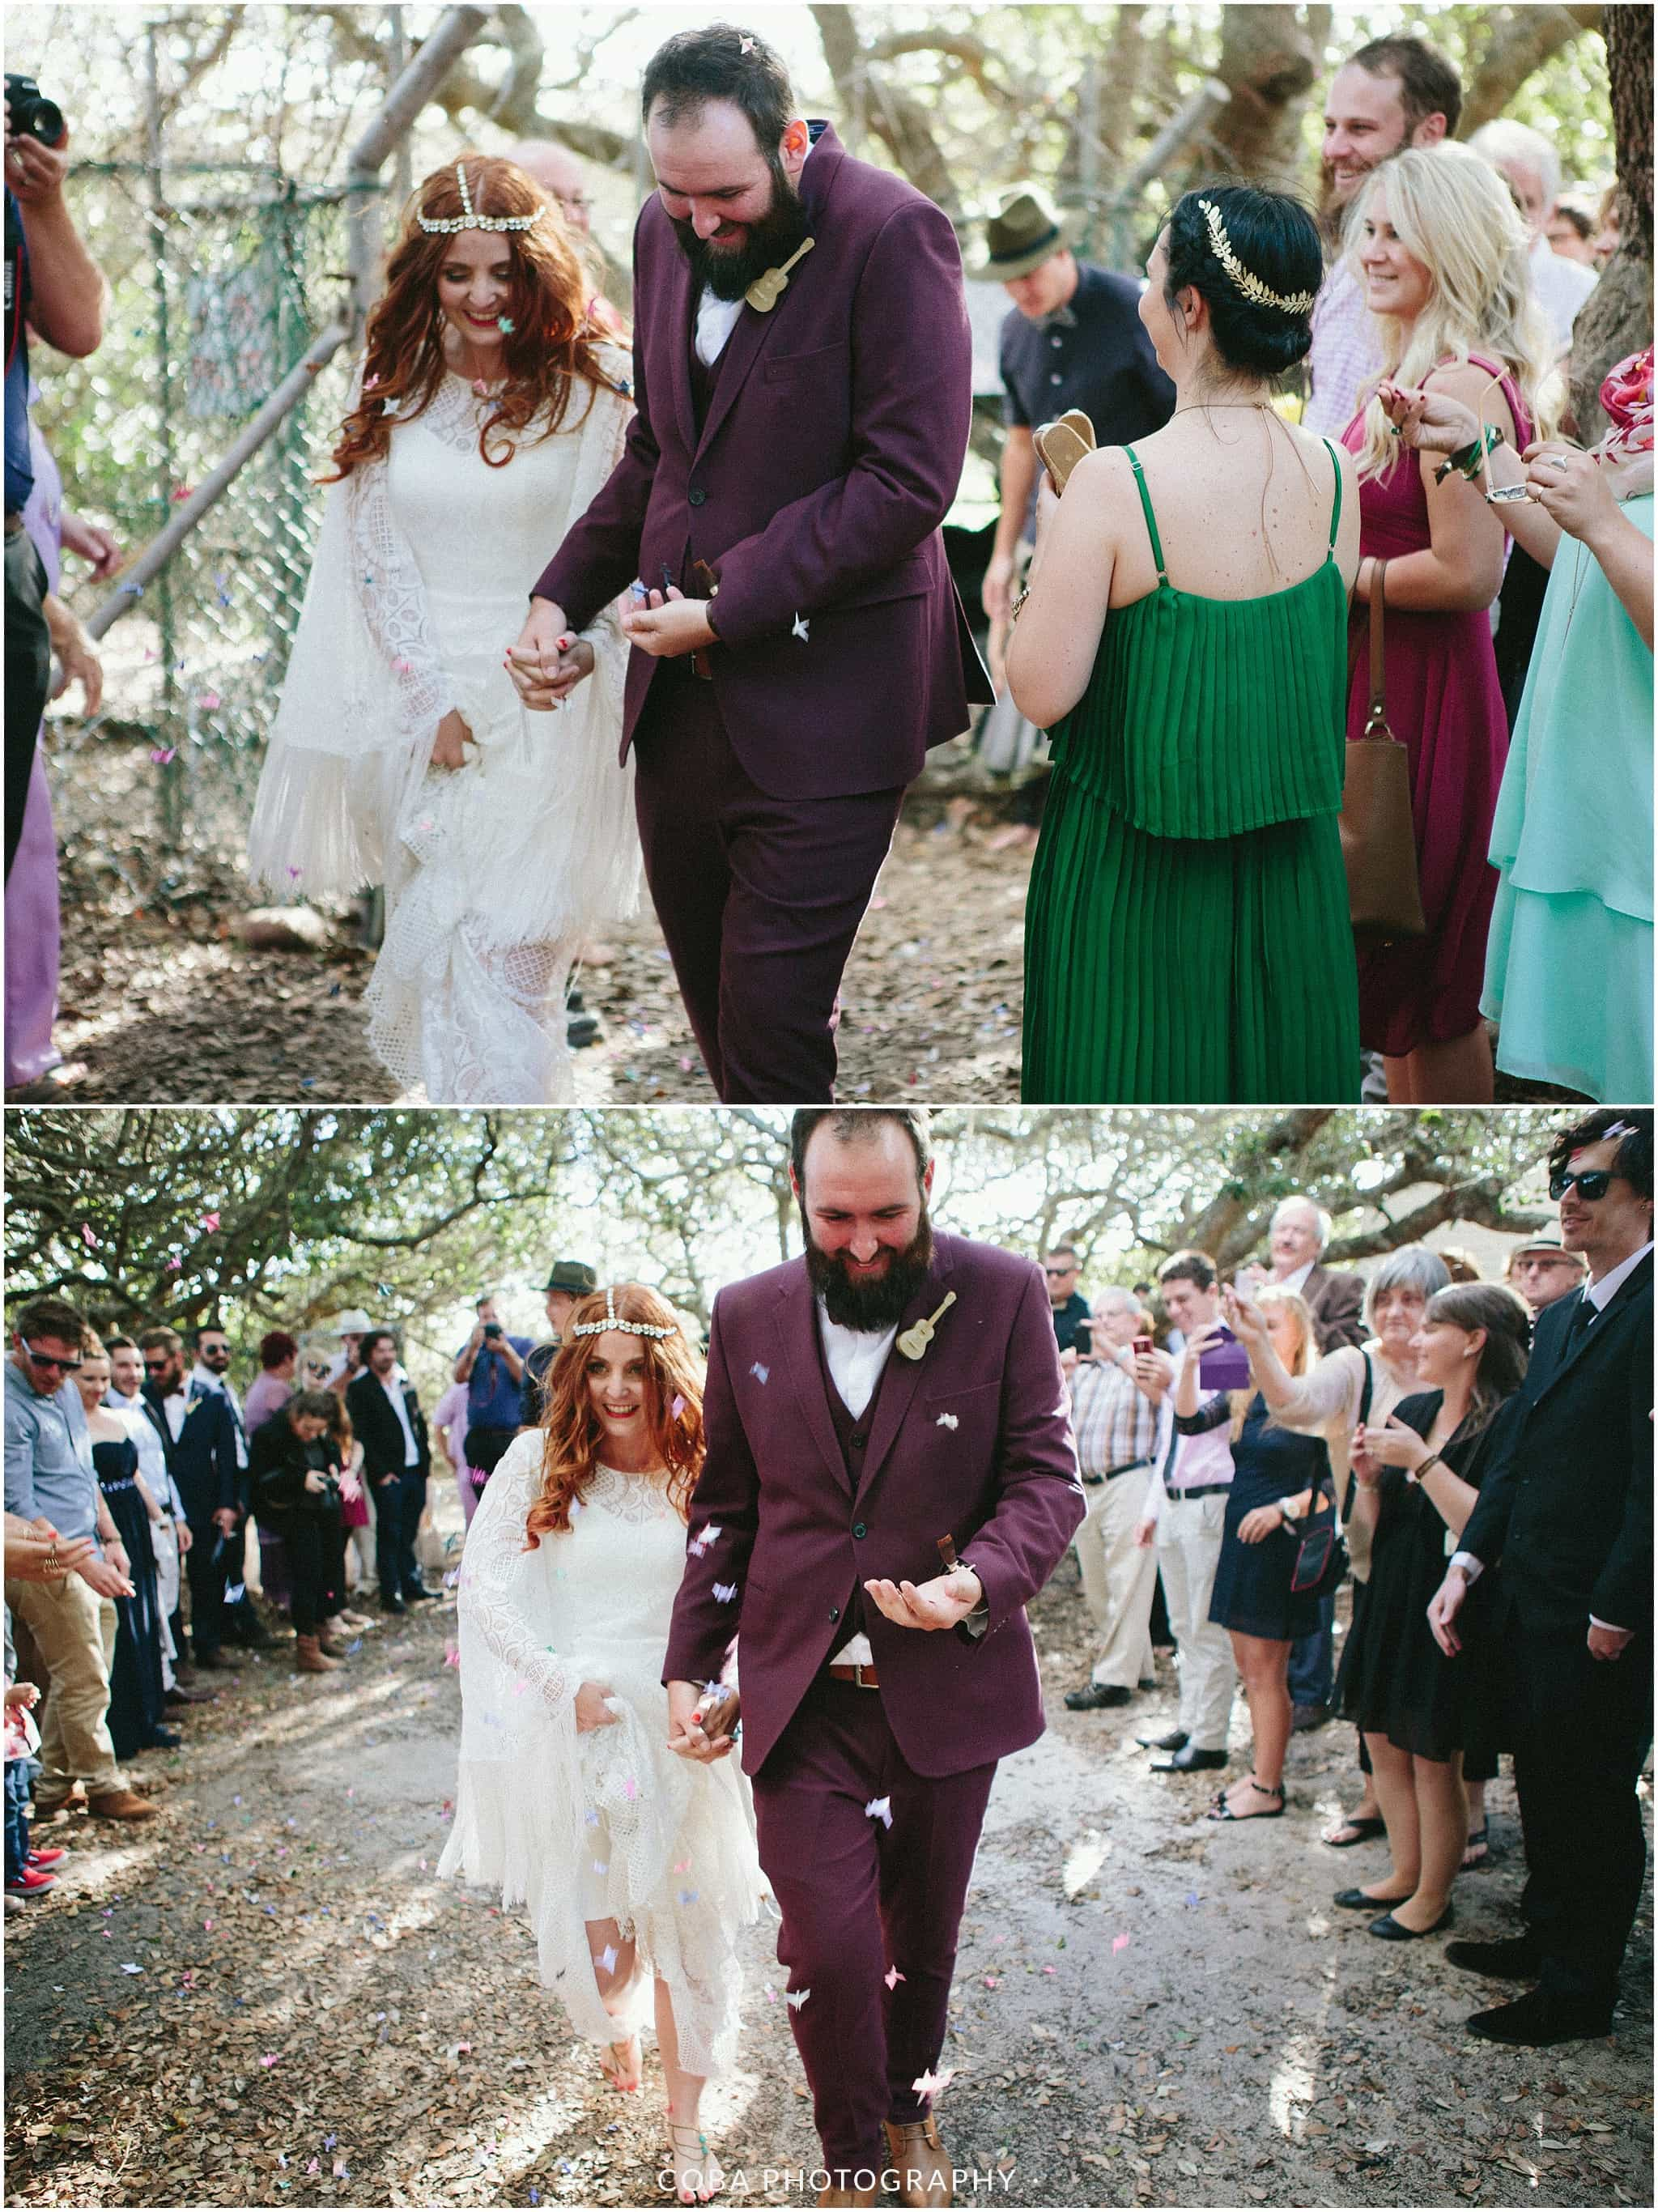 Conrad & Mareli - Boho beach wedding - ceremony (23)